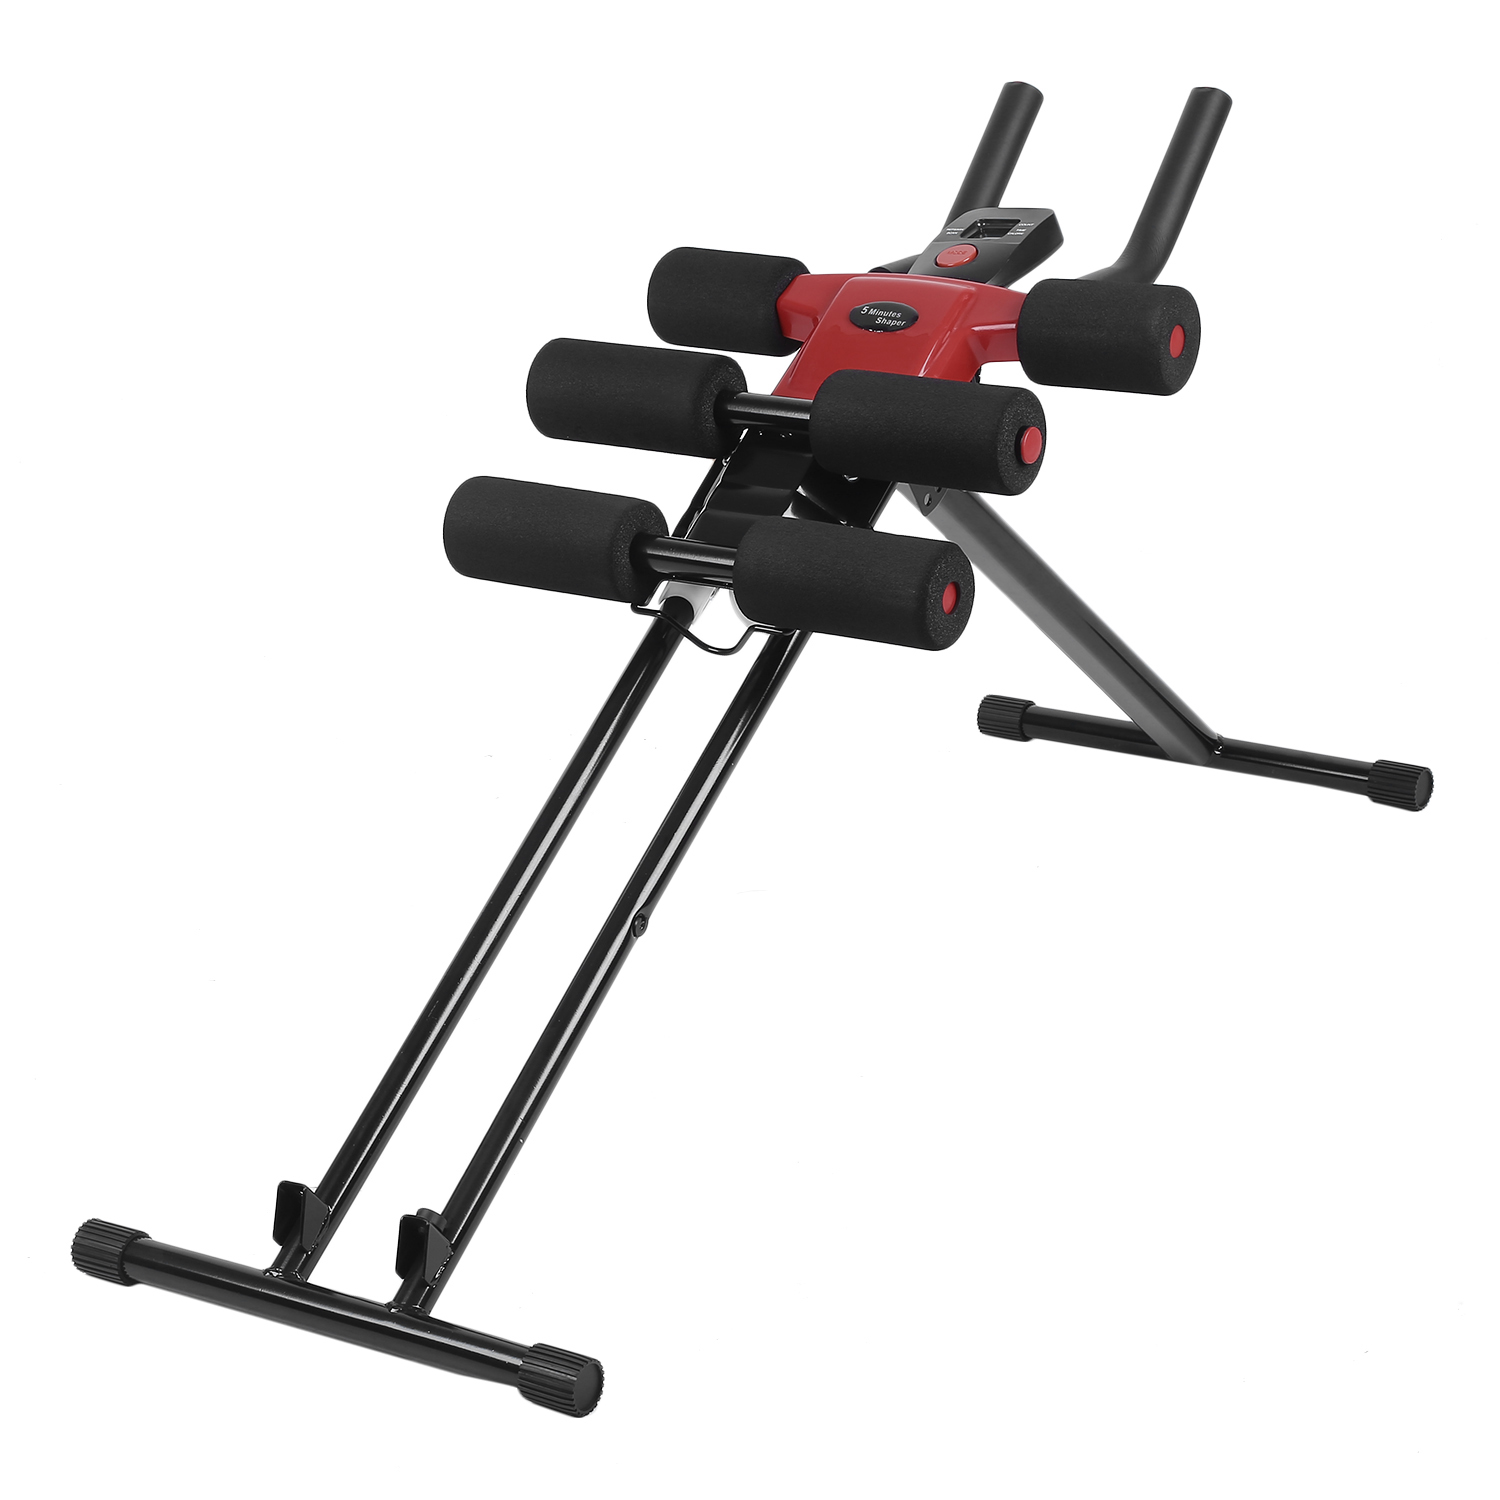 CNMODLE 4 Levels Strength Adjustable Abdominal Trainer Glider Machine Fitness Home Gym Exercise Muscle Build Equipment